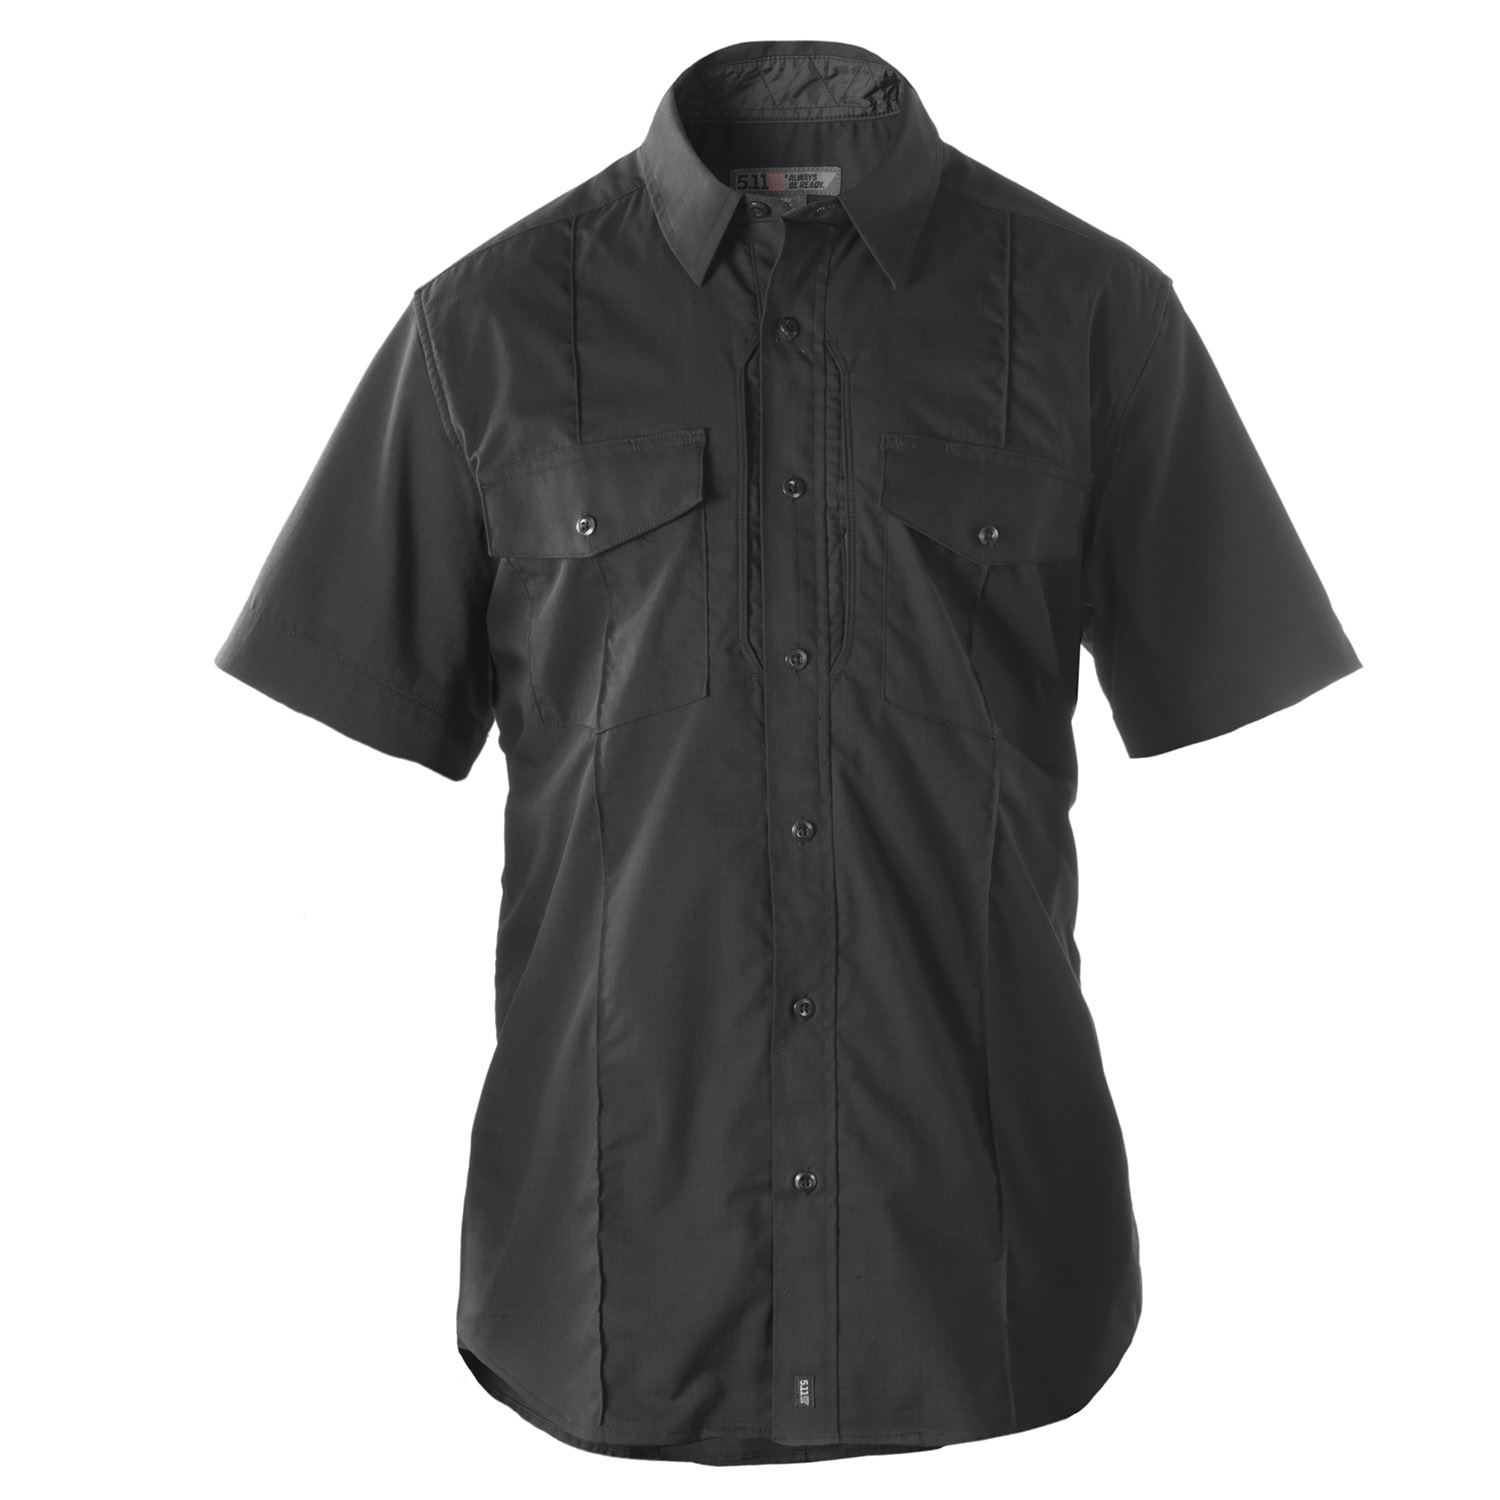 5.11 Tactical Men's Short Sleeve Class B Stryke PDU Shirt